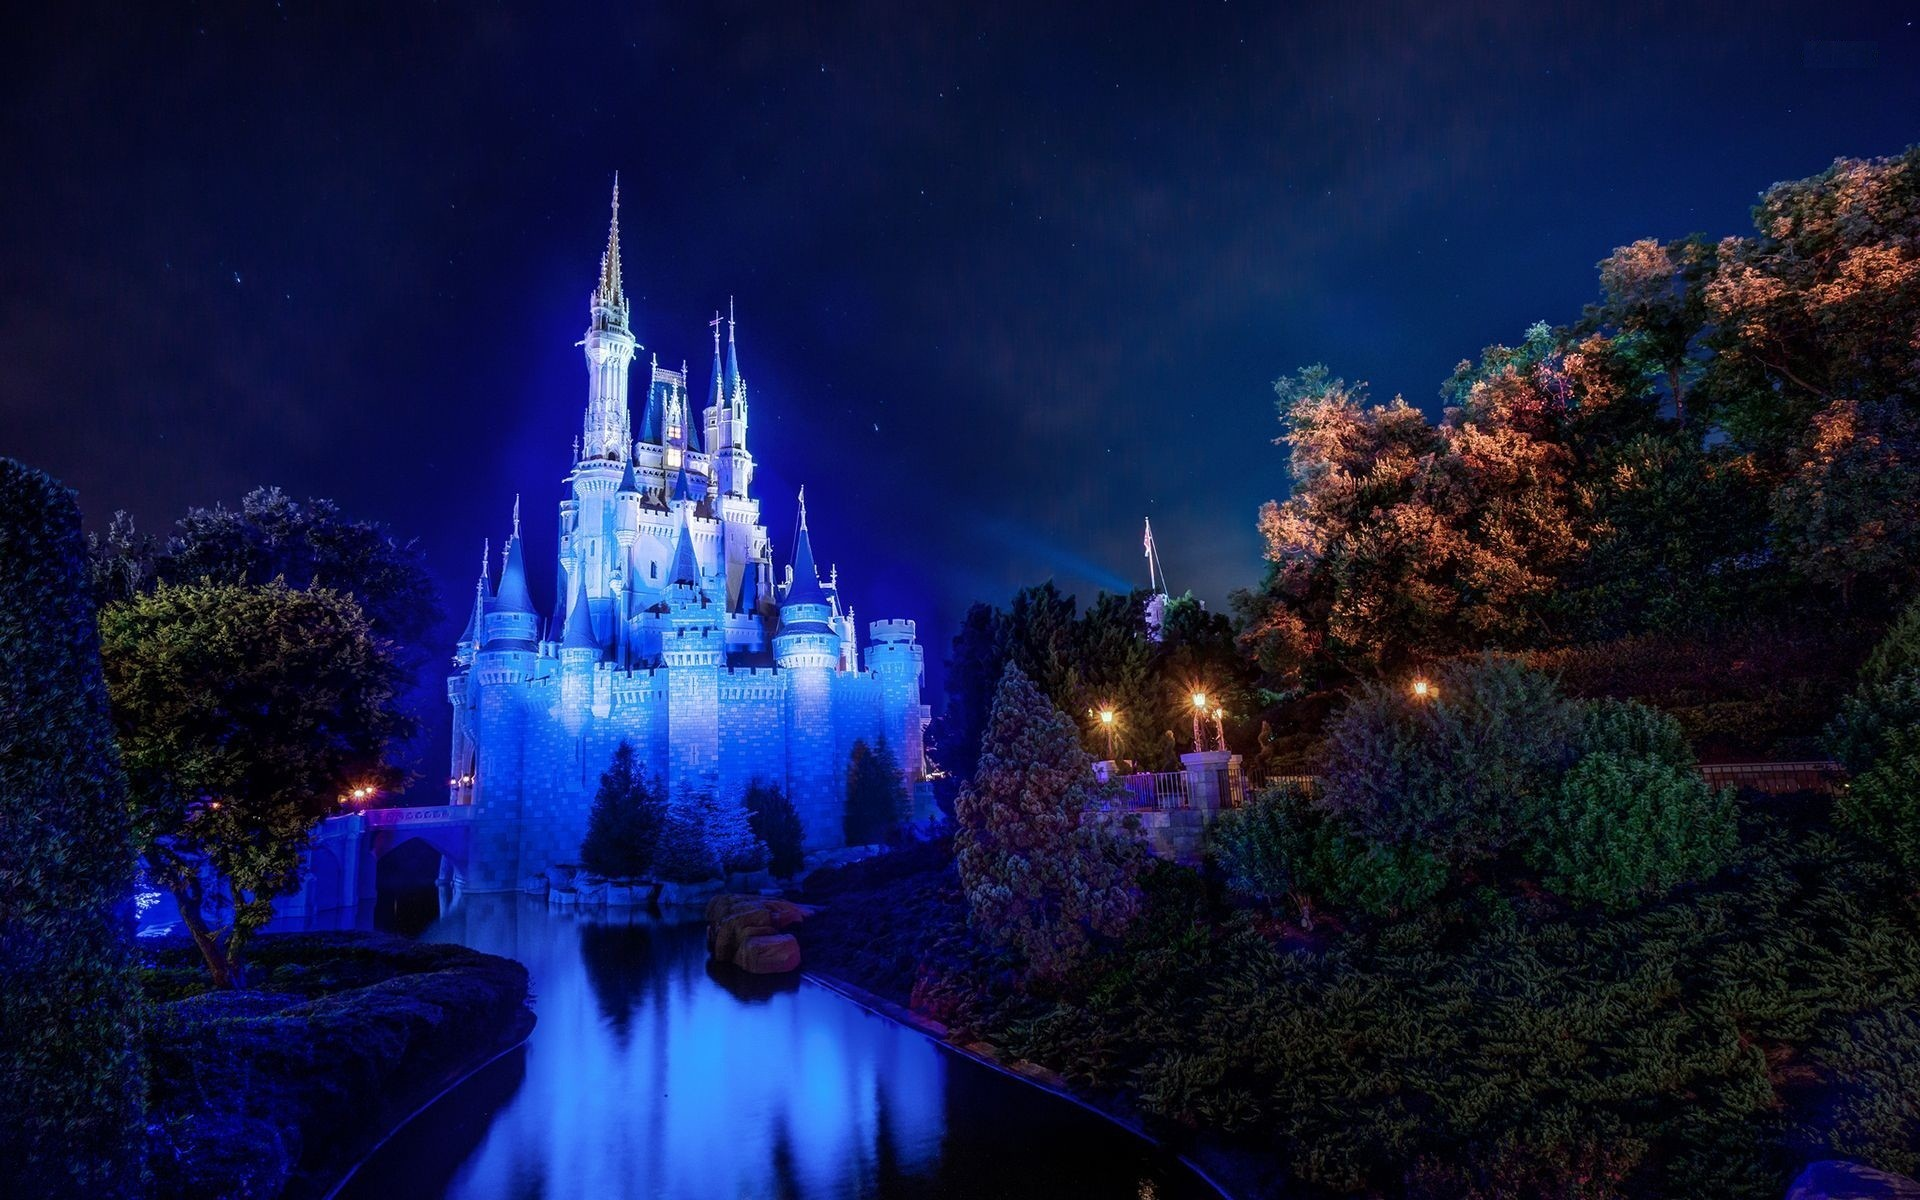 1920x1200 Disney world background image hd desktop wallpaper wide free